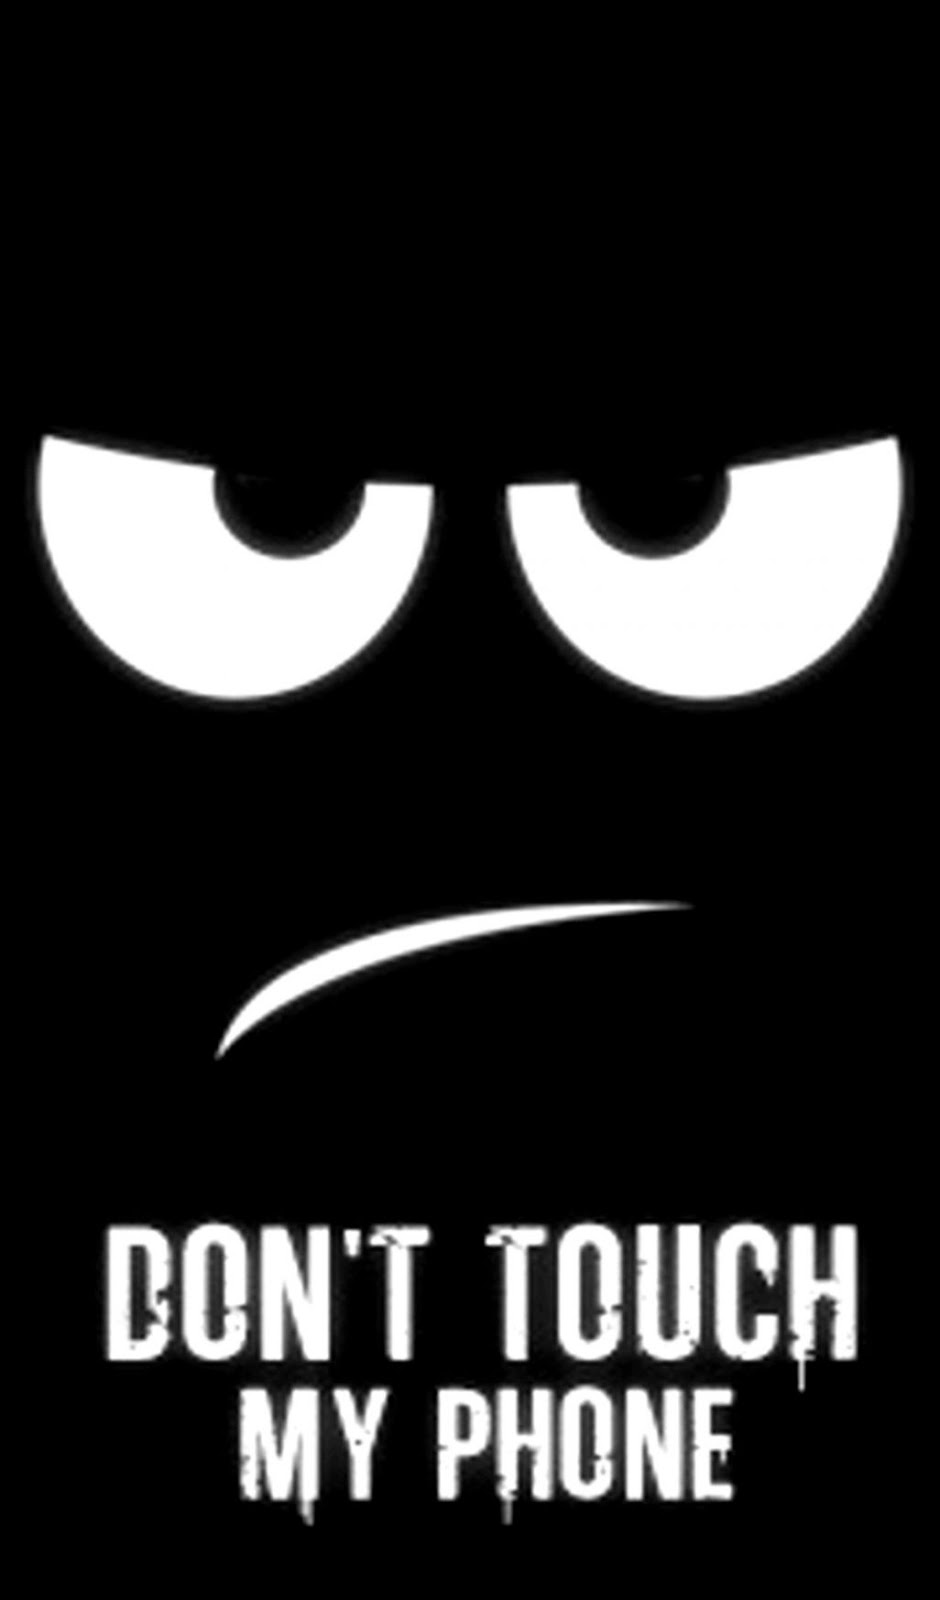 Do Not Touch My Phone Wallpaper for iPhones